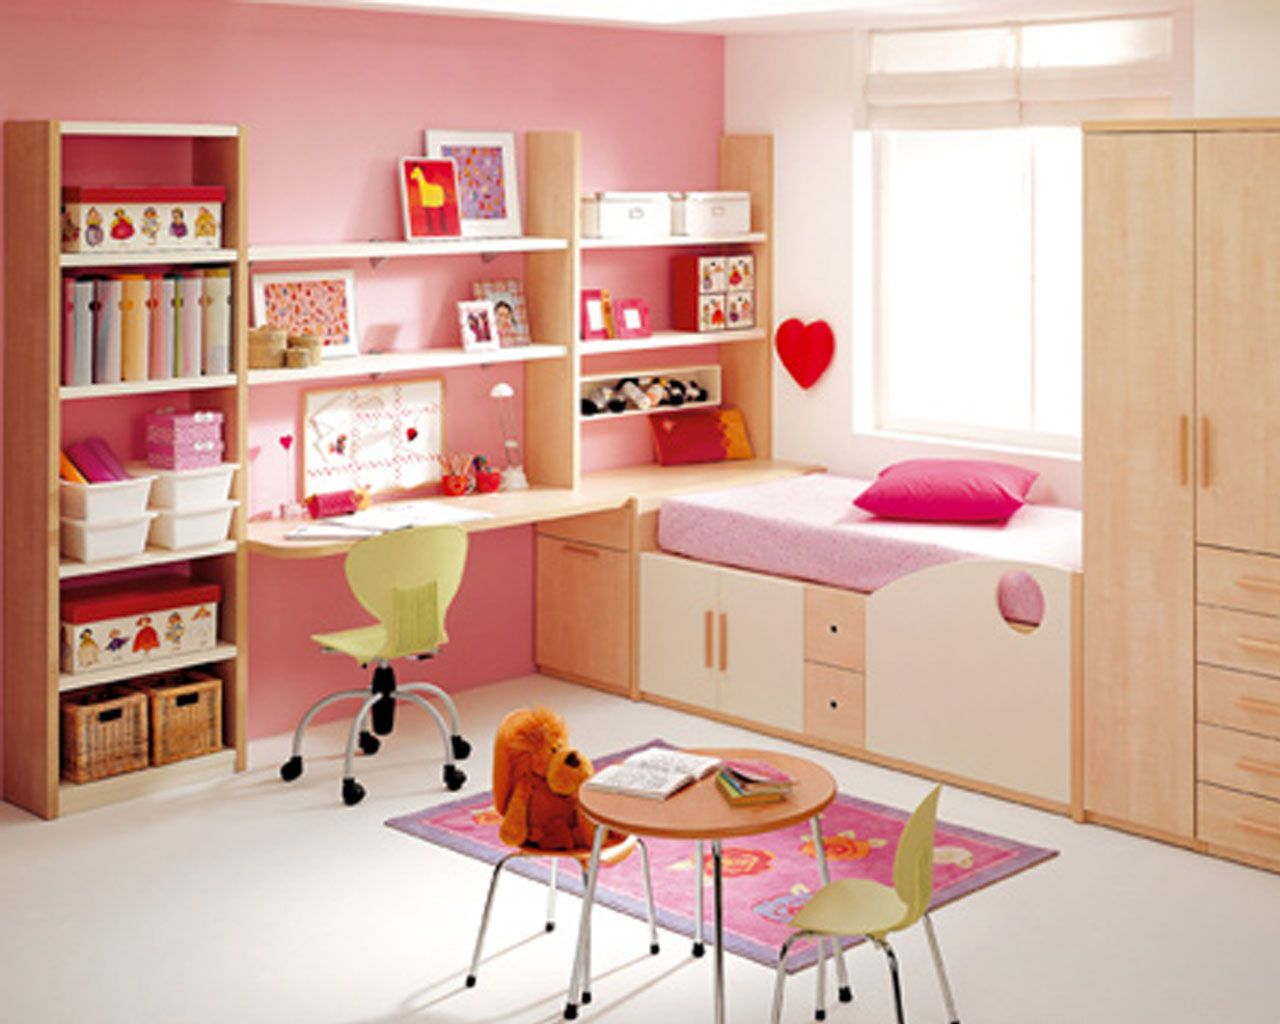 Girls Room Designs Girly Bedroom Ideas For Small Rooms Oldsoulstyle  Bedroom Gallery